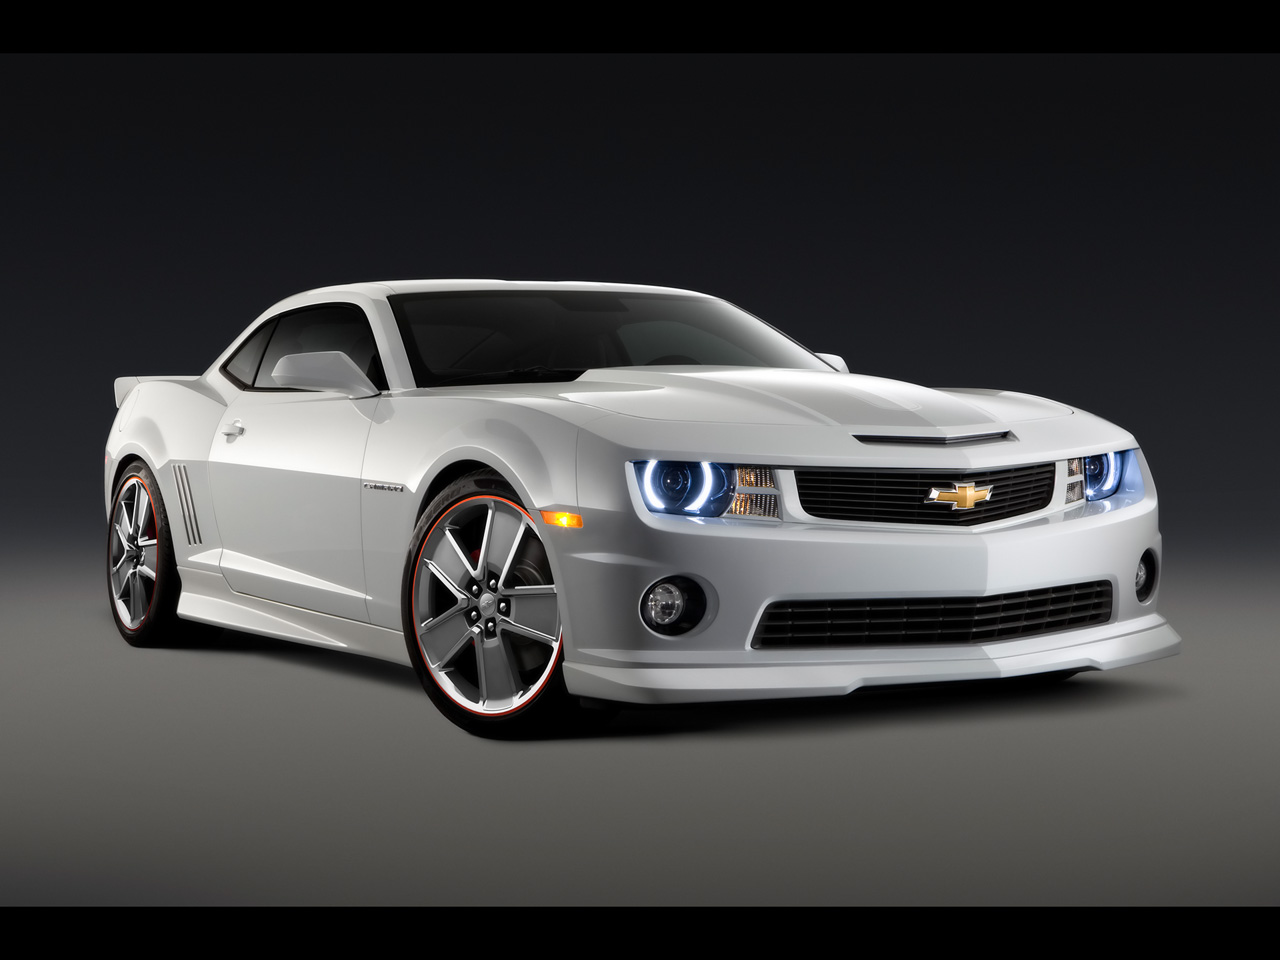 Chevrolet Camaro Wallpapers HD Wallpaper Cars Wallpapers 1280x960